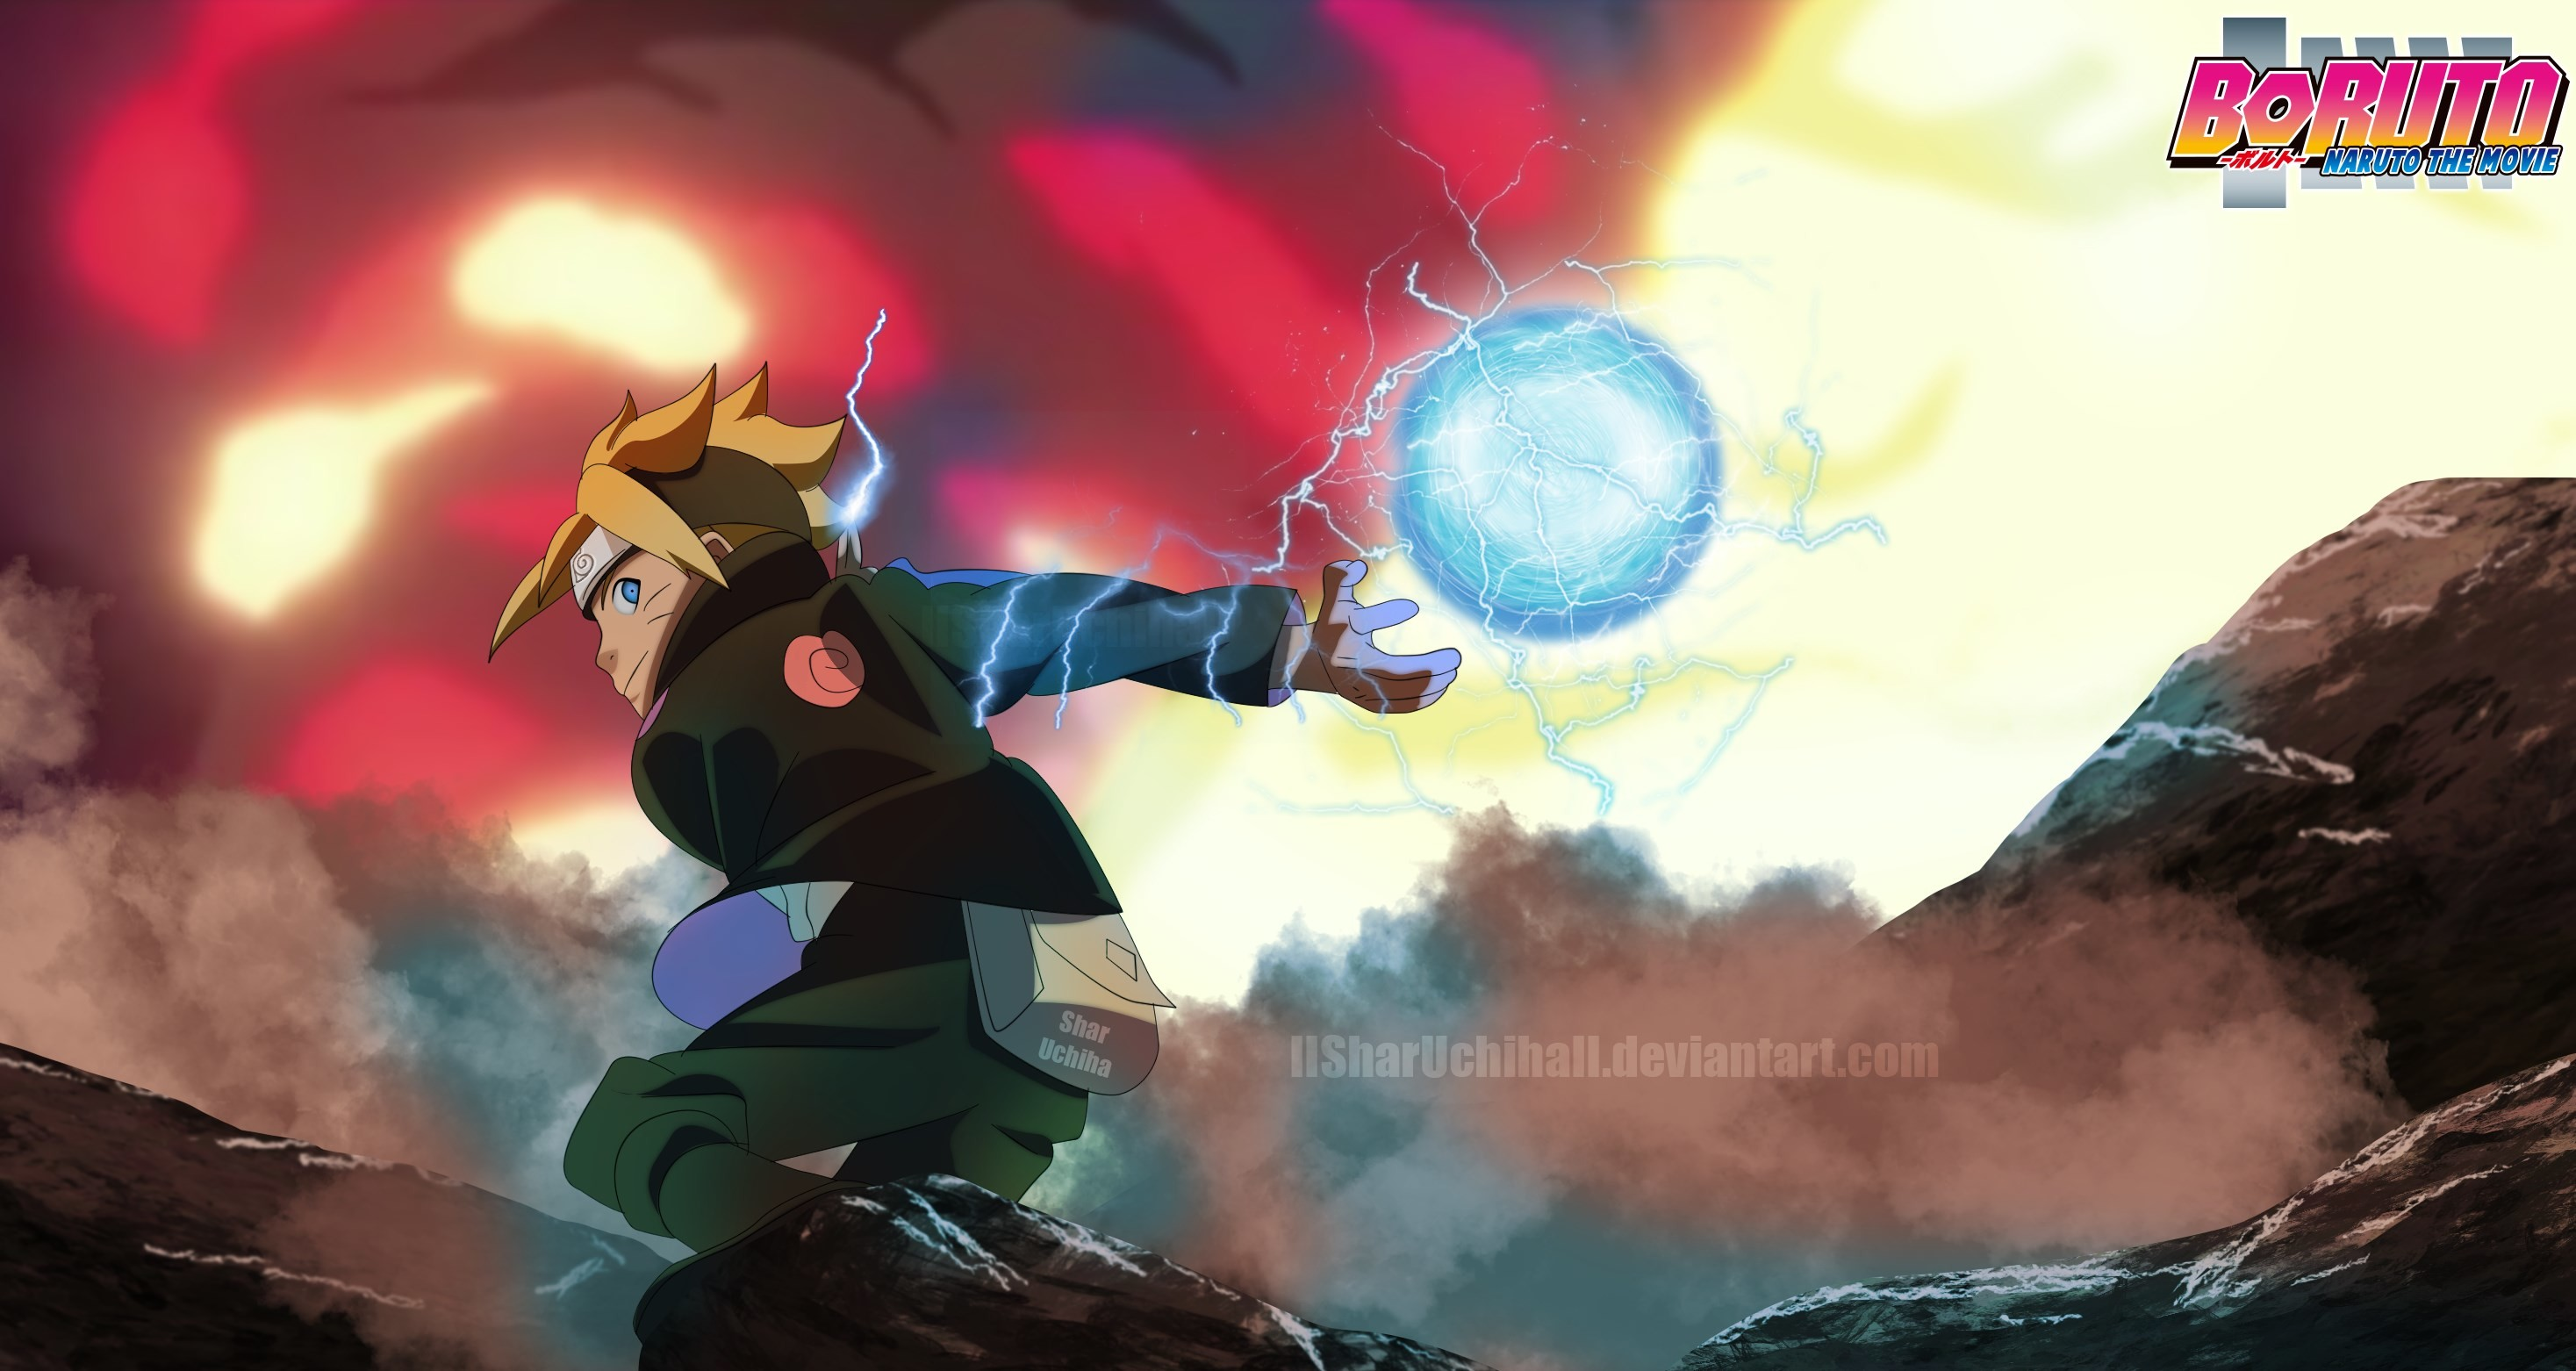 2935x1562 px boruto naruto the movie wallpaper free by Hallstein Little